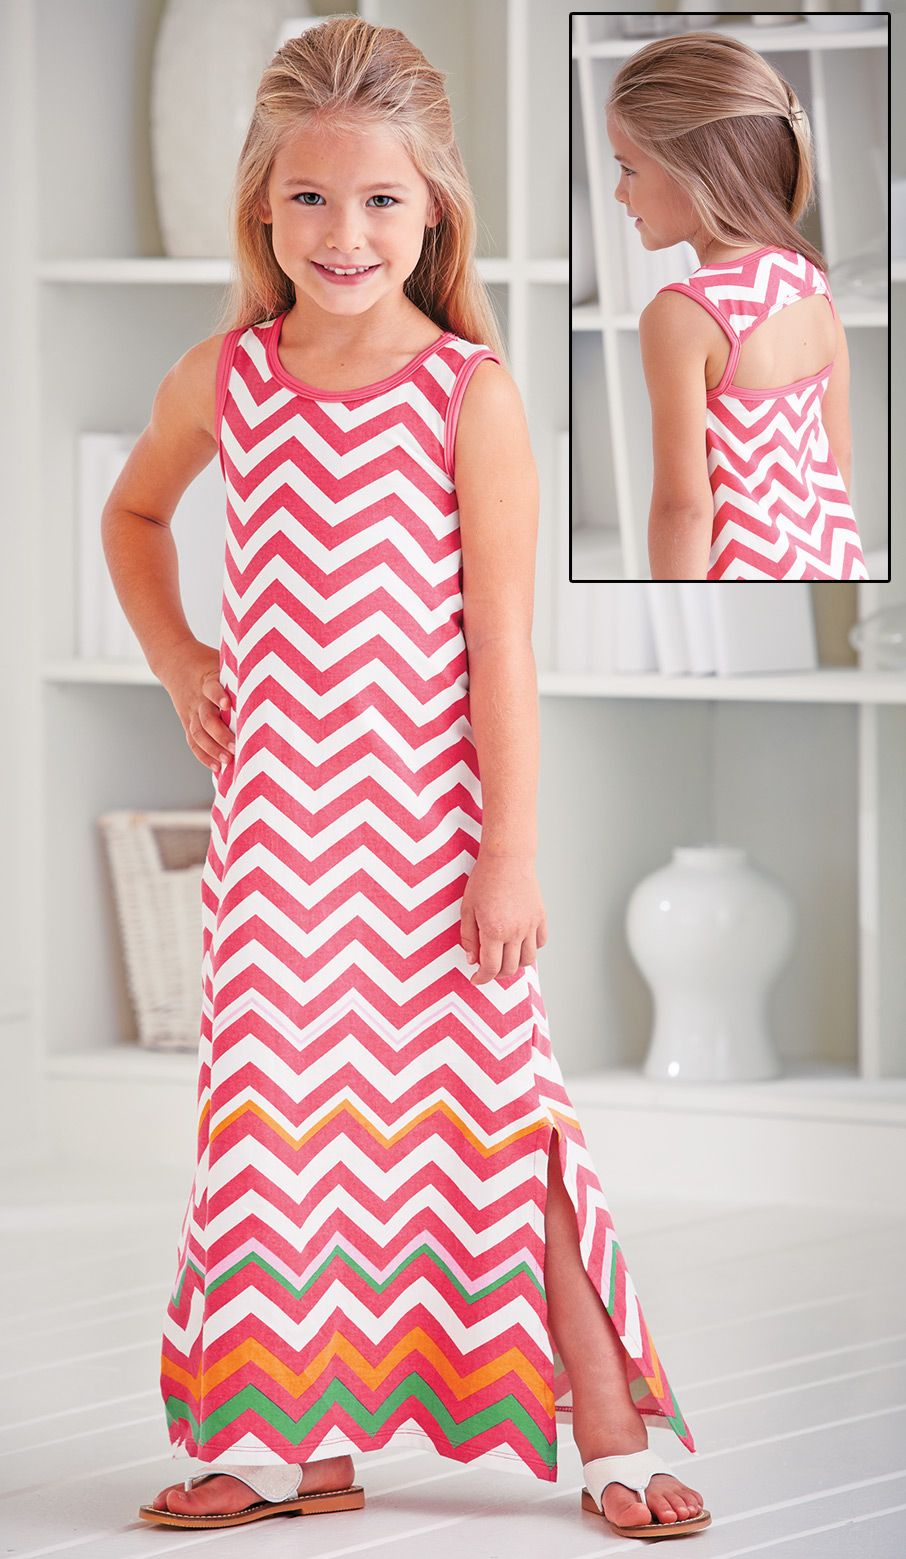 d0370d1690 From CWDkids: Avery Chevron Maxi Dress. | Kids Apparel | Kids ...